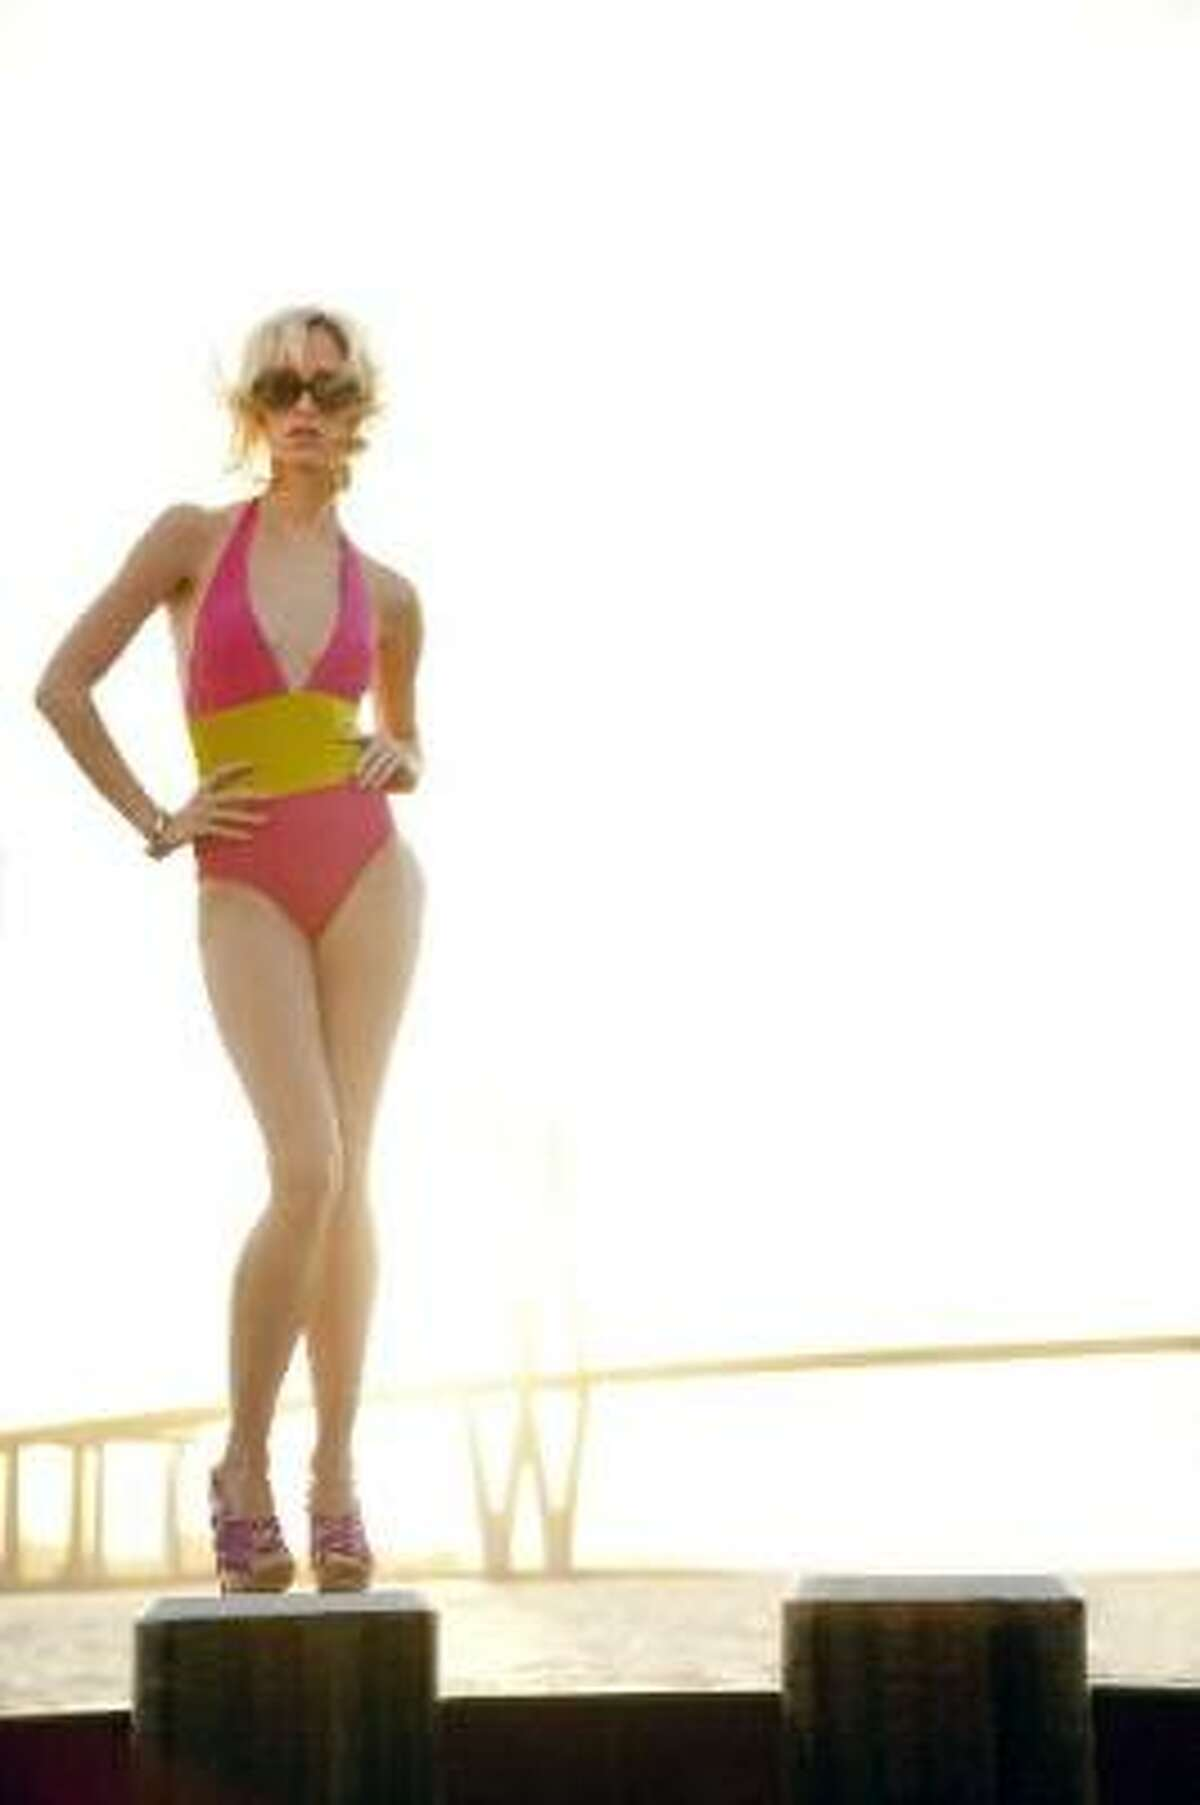 Leopoldine Golunski of the Neal Hamil Agency wears an Eres one-piece, $568, La Mode Swimwear. Lanvin floral platforms, $950, and Chanel sunglasses, $270, Neiman Marcus. Styling by Dawn Bell. Hair and makeup by Tree Vaello, Page Parkes Models. Shot on location aboard the Wesley A, a Z-tech harbor tug, courtesy of Bay Houston Towing and G & H Towing Co.